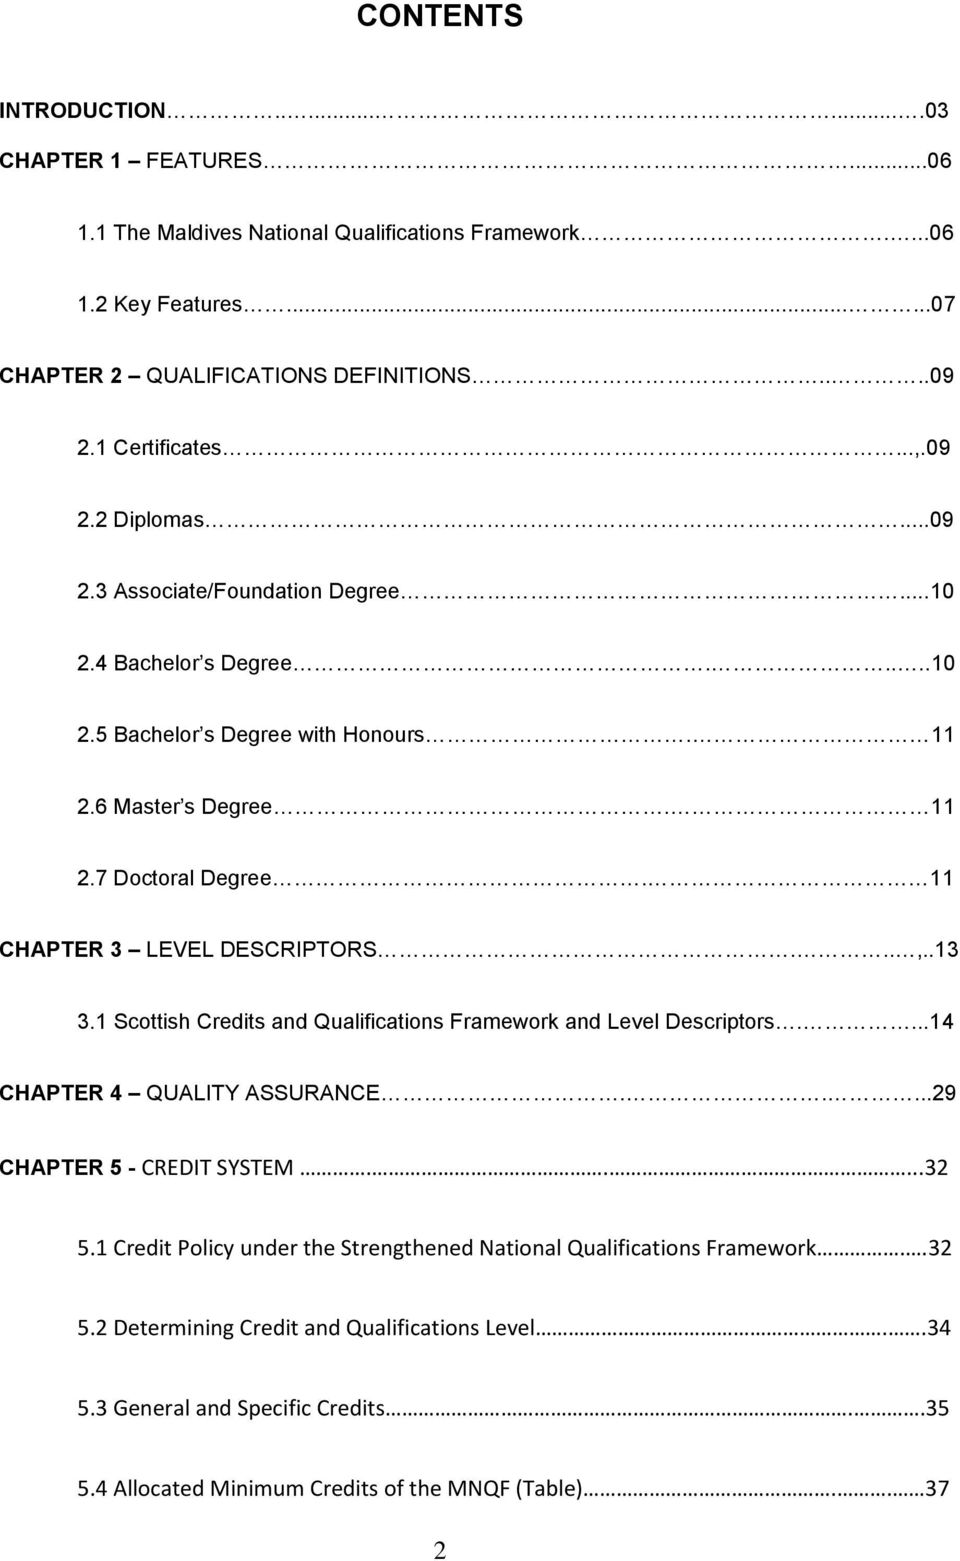 11 CHAPTER 3 LEVEL DESCRIPTORS...,..13 3.1 Scottish Credits Qualifications Framework Level Descriptors....14 CHAPTER 4 QUALITY ASSURANCE.....29 CHAPTER 5 - CREDIT SYSTEM.....32 5.